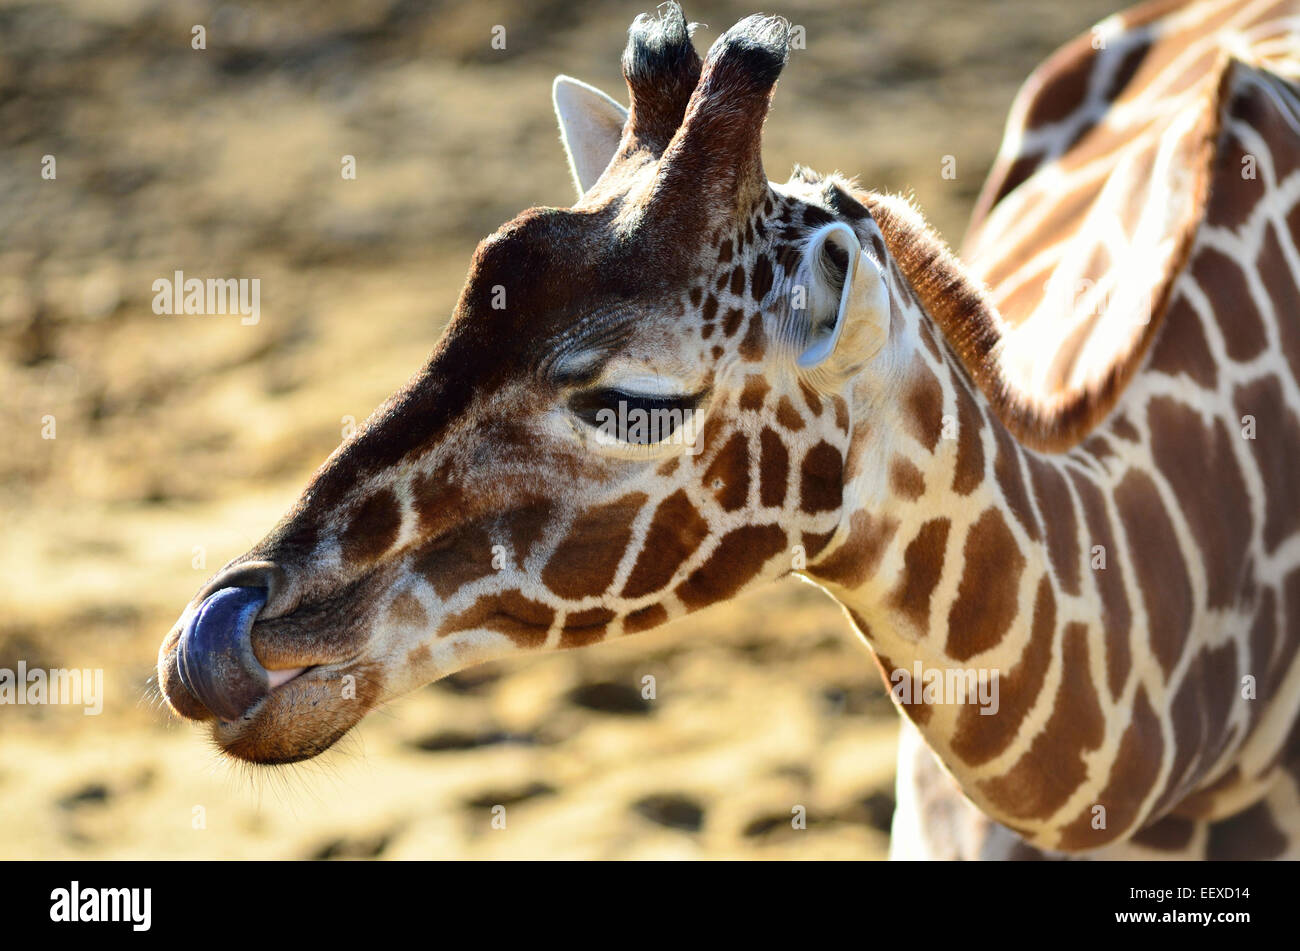 Giraffe licking its nose with it;s long tongue (EDITORIAL USE ONLY) - Stock Image